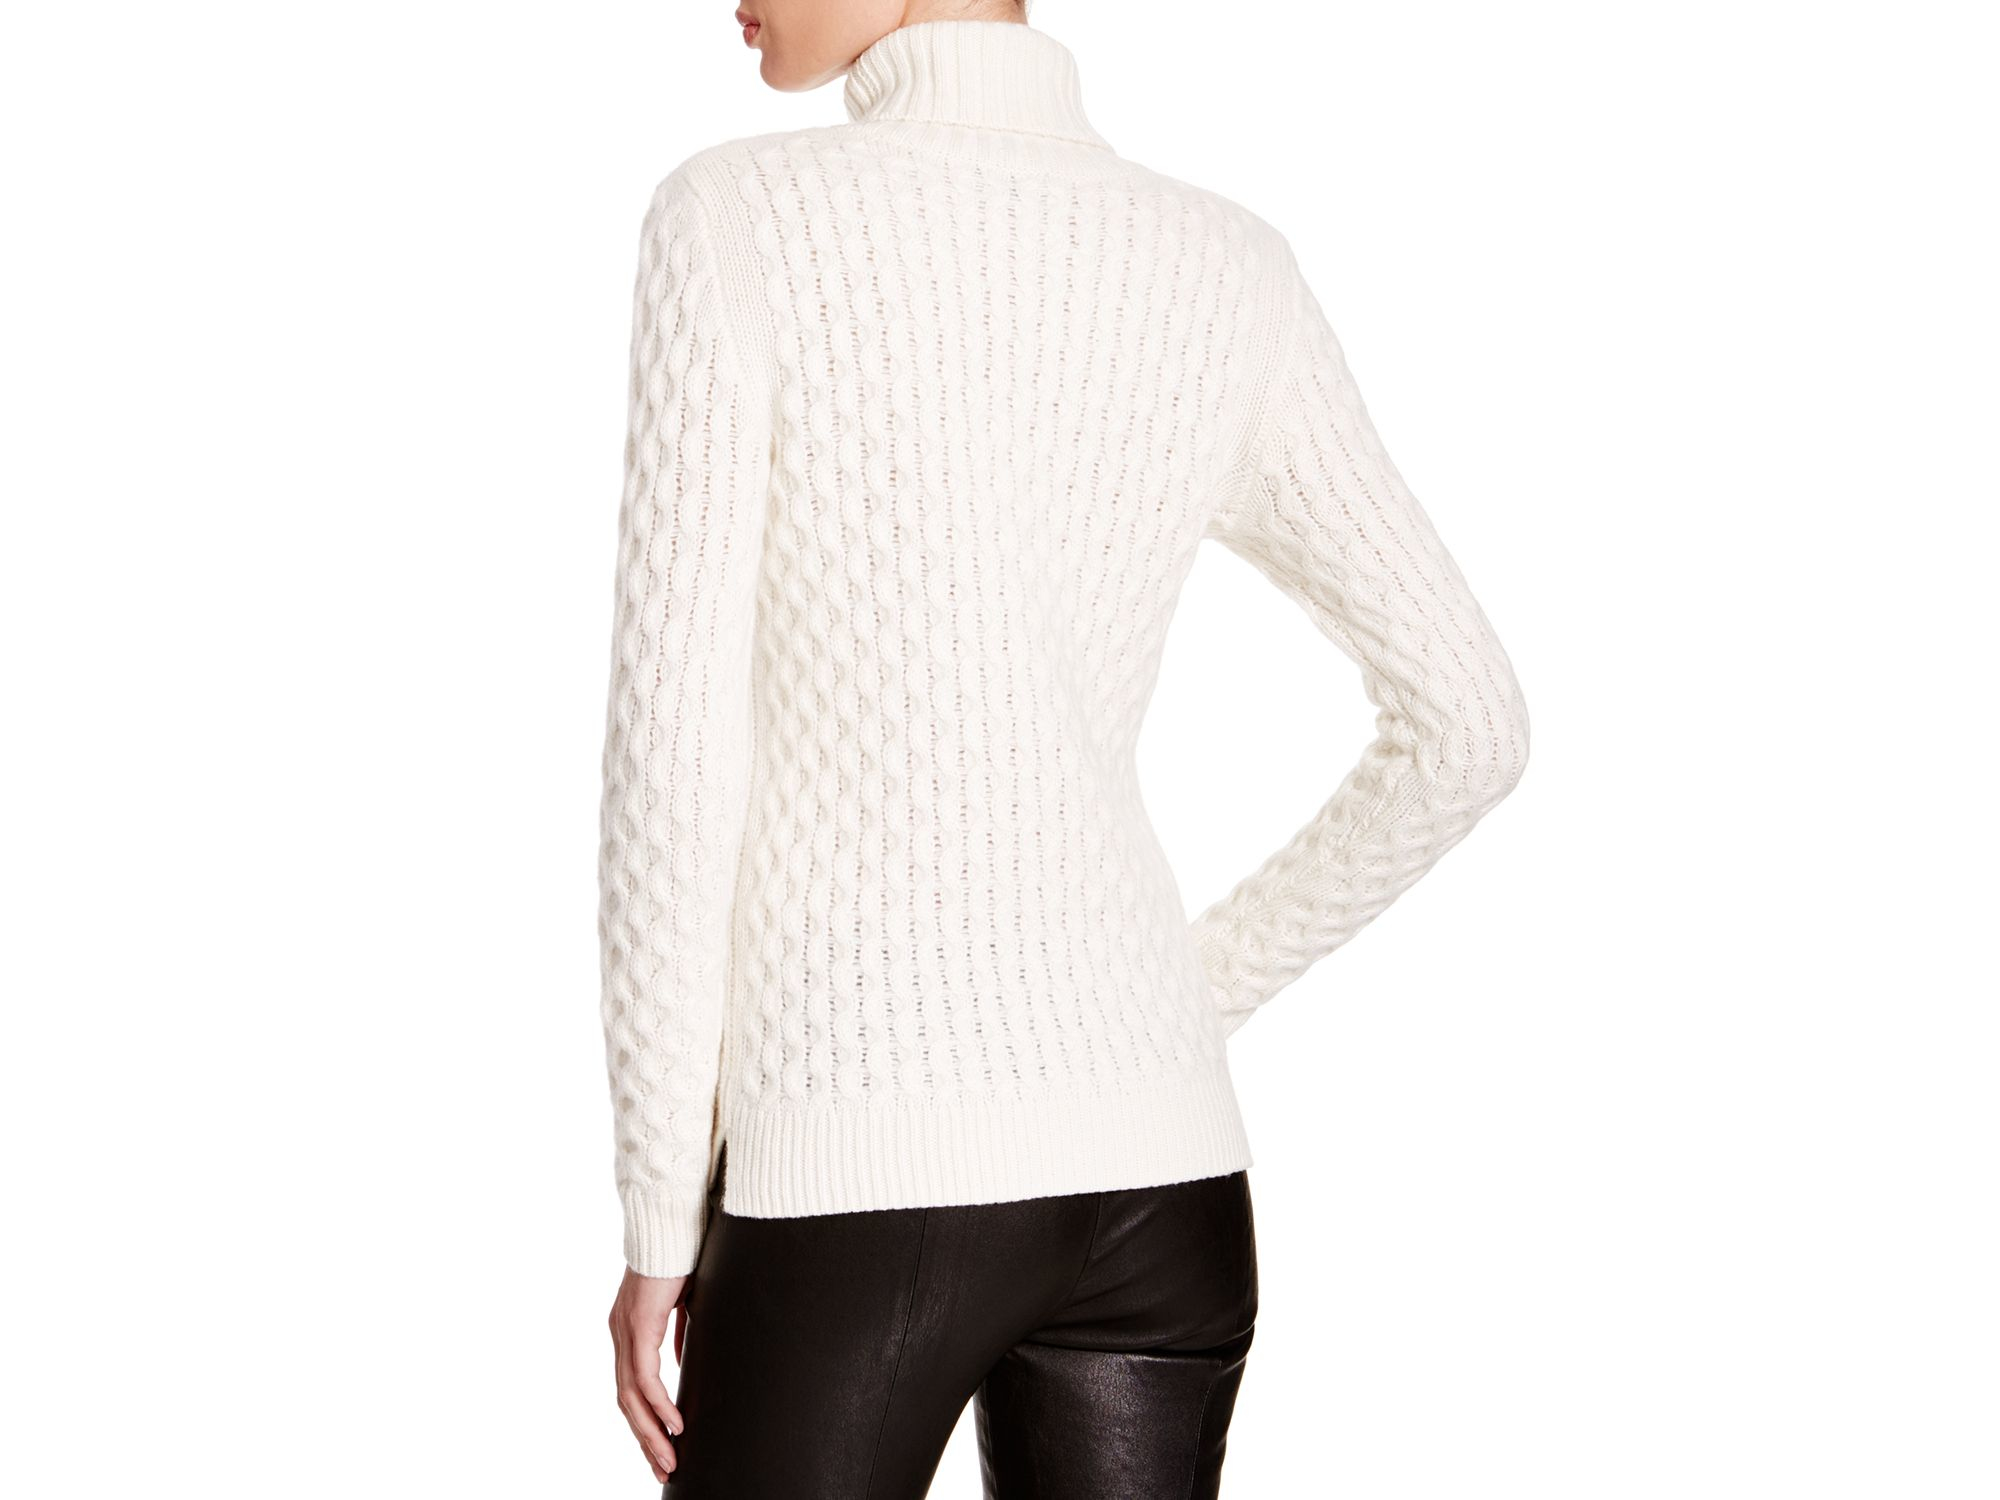 Winter White Cable Knit Sweaters 83